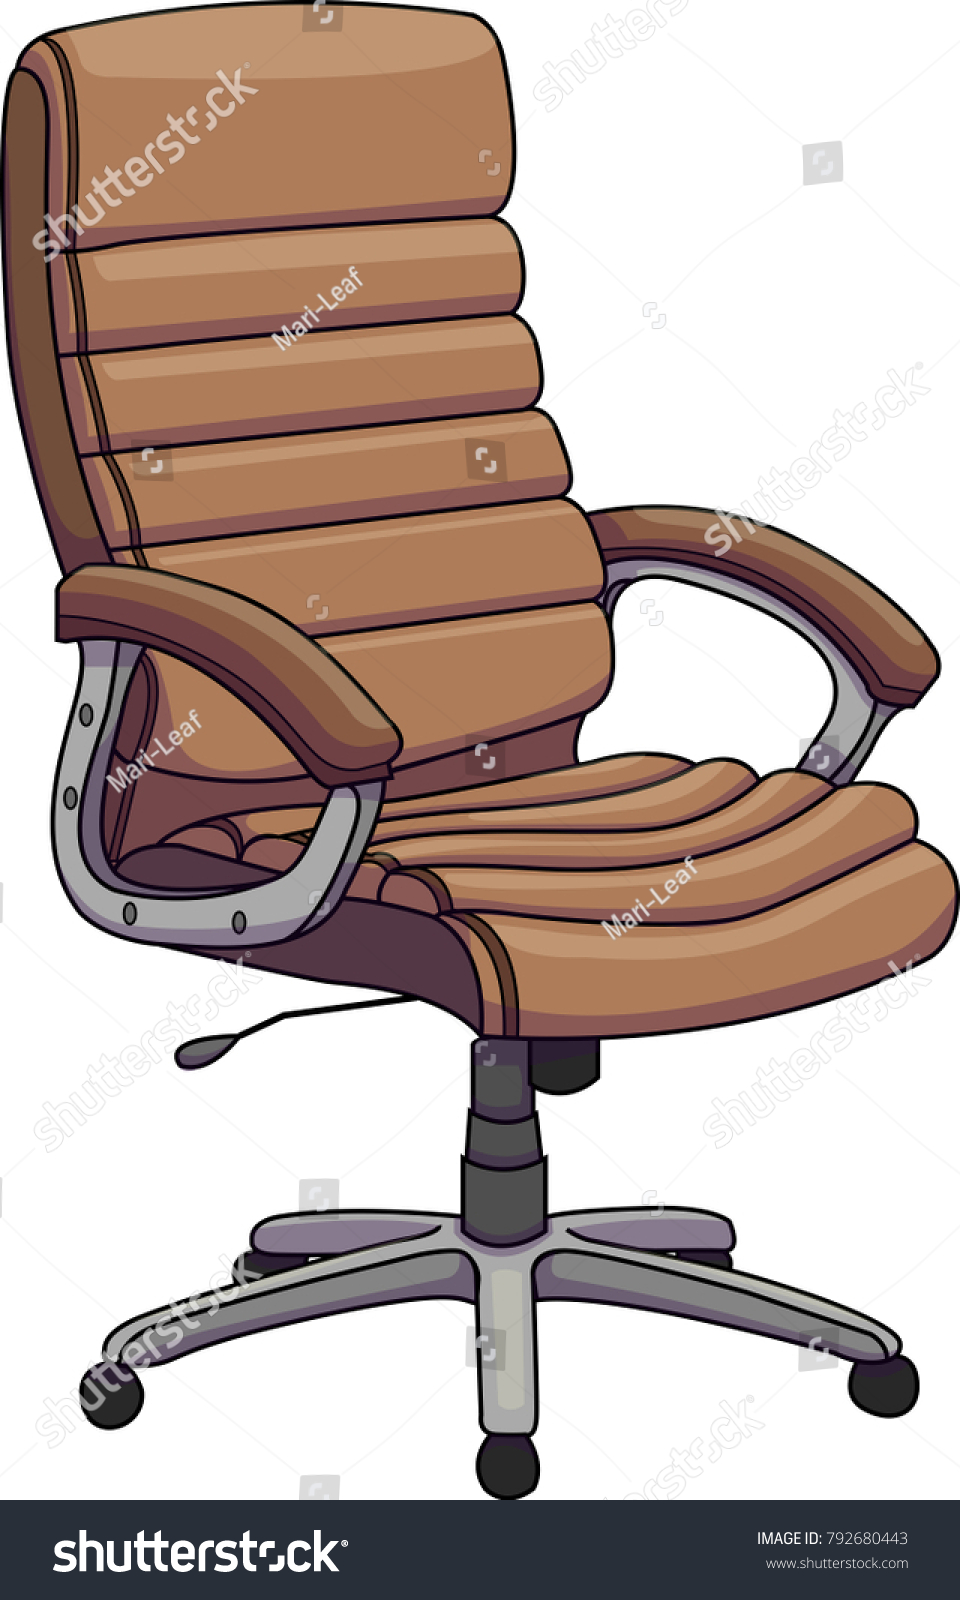 brown leather office chairs. Vector Illustration Of A Brown Leather Office Chair, Swivel Revolving Chair. Chairs